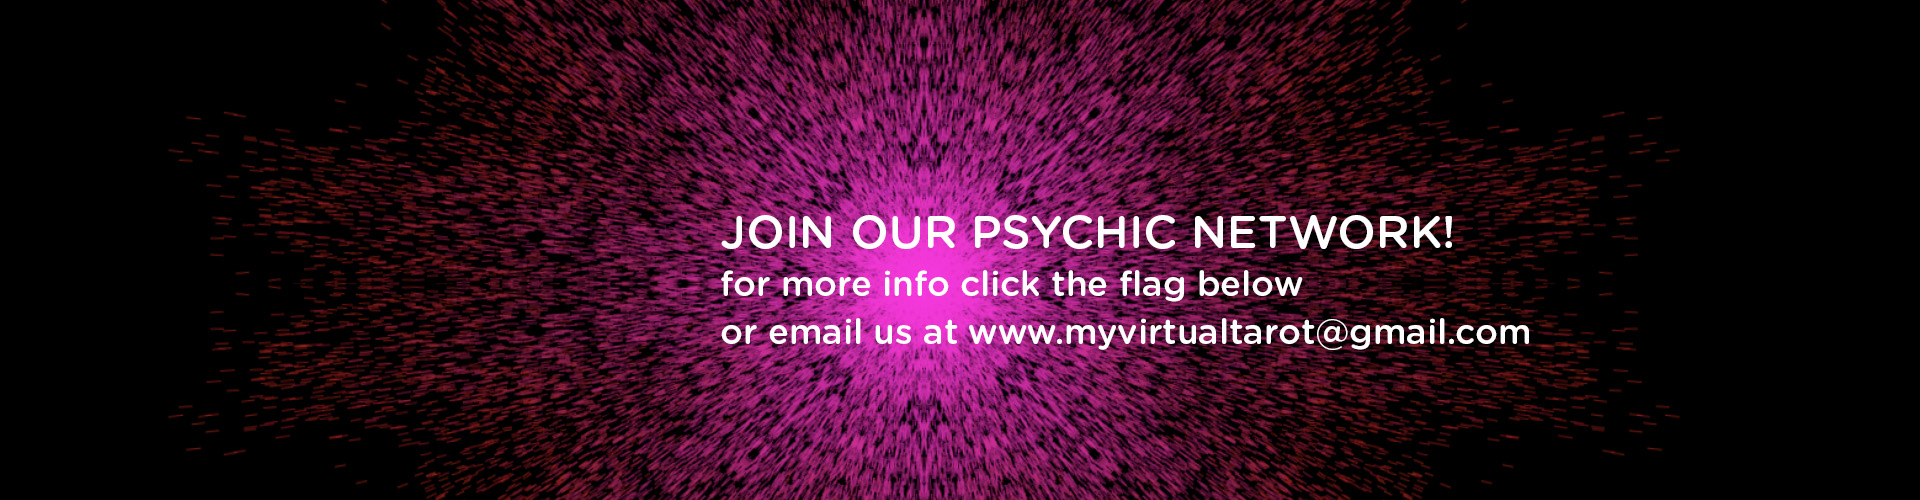 ART-CARDS-Psychic-network